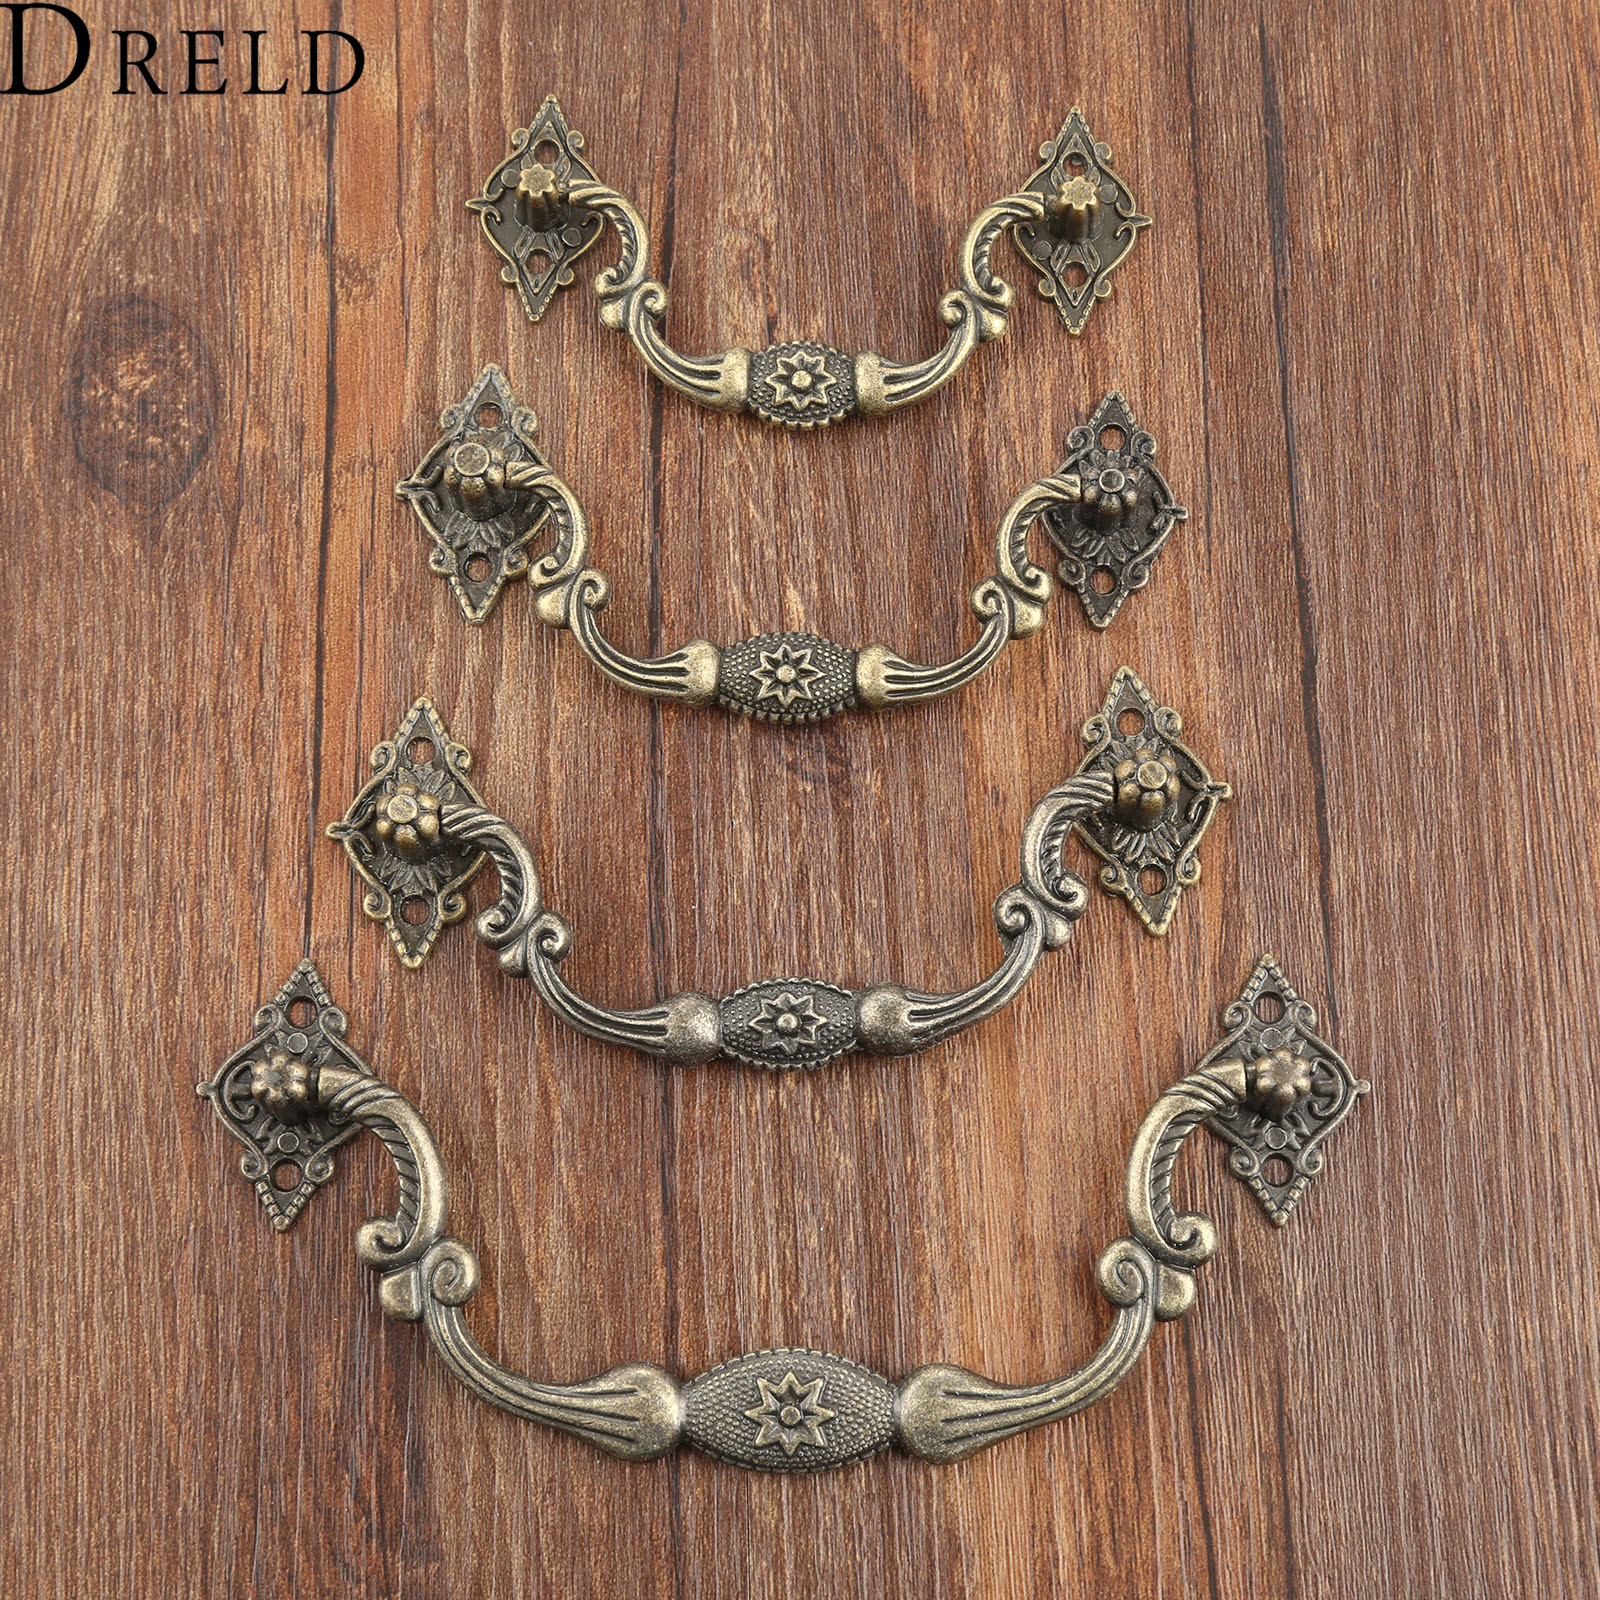 DRELD 1Pc Antique Furniture Handles Cabinet Knobs and Handles Drawer Cabinet Kitchen Pull Cupboard Handle Furniture Fittings vintage furniture handles cabinet knobs and handles zinc alloy cupboard handles drawer wardrobe pull handles furniture fittings